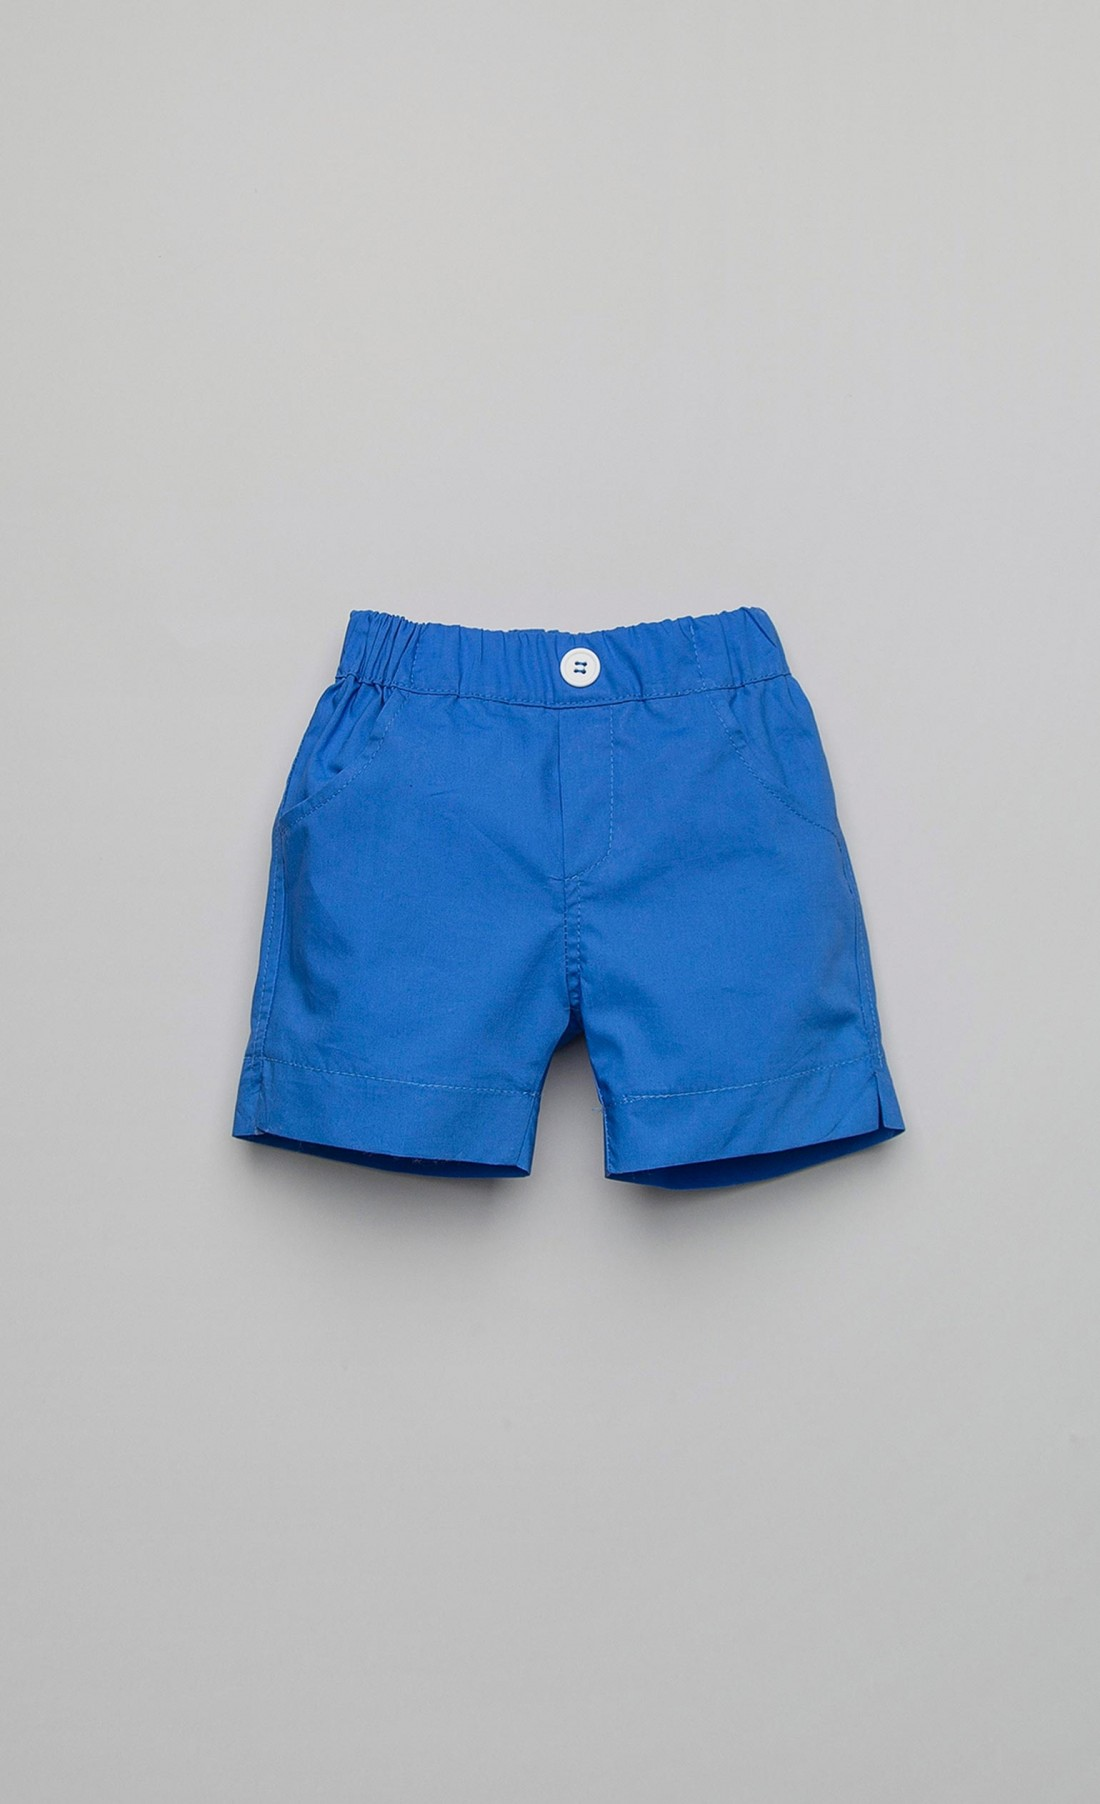 Short trousers in light blue cotton